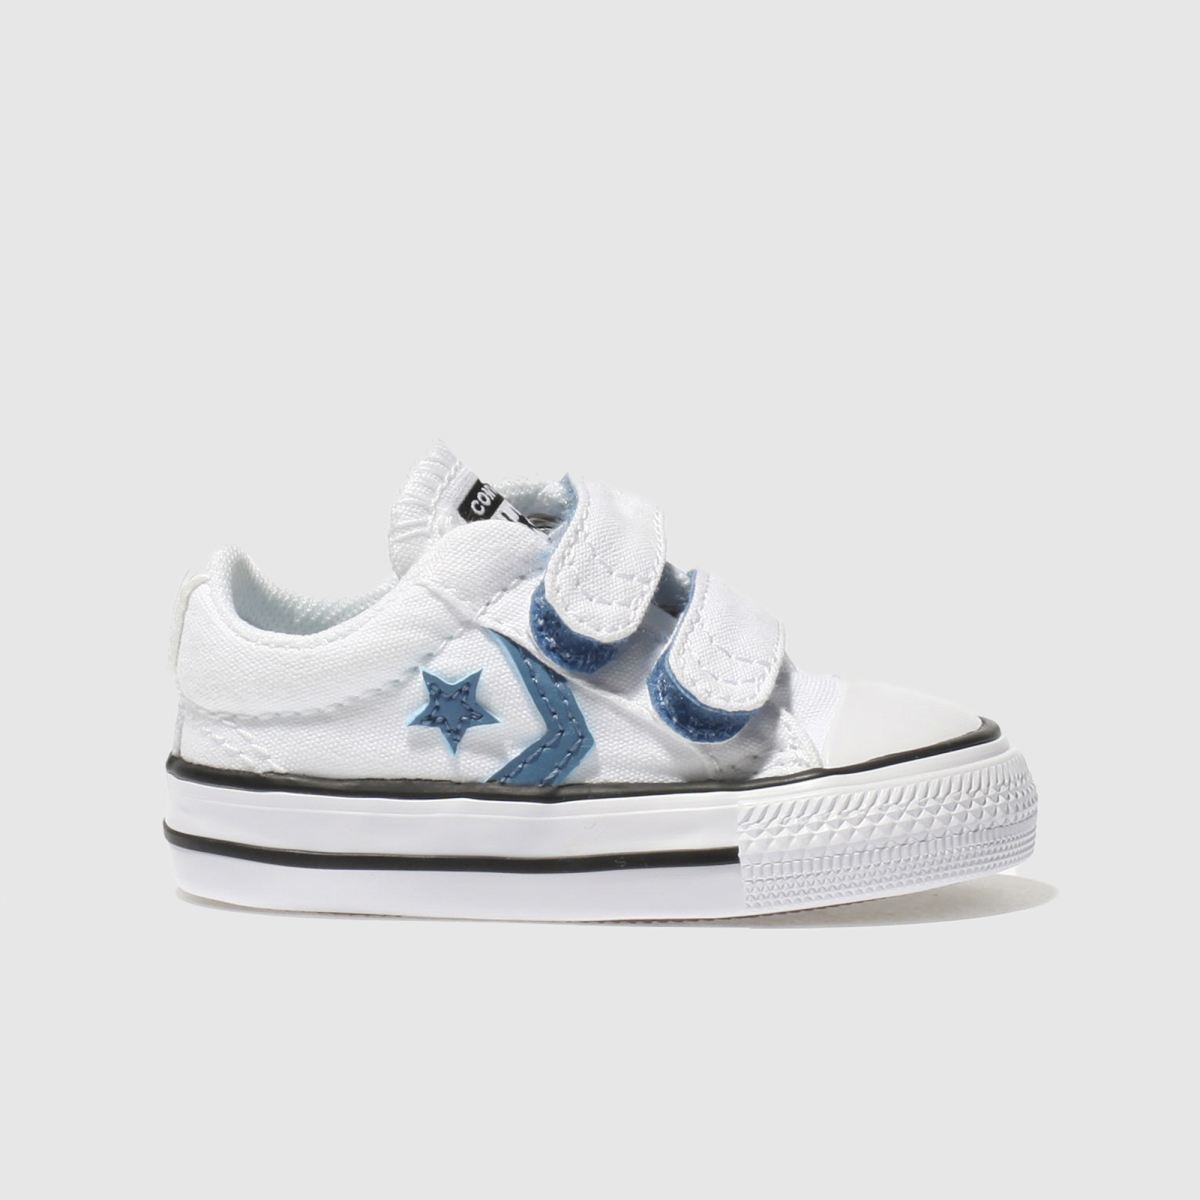 Converse White & Blue Star Player 2v Boys Toddler Trainers